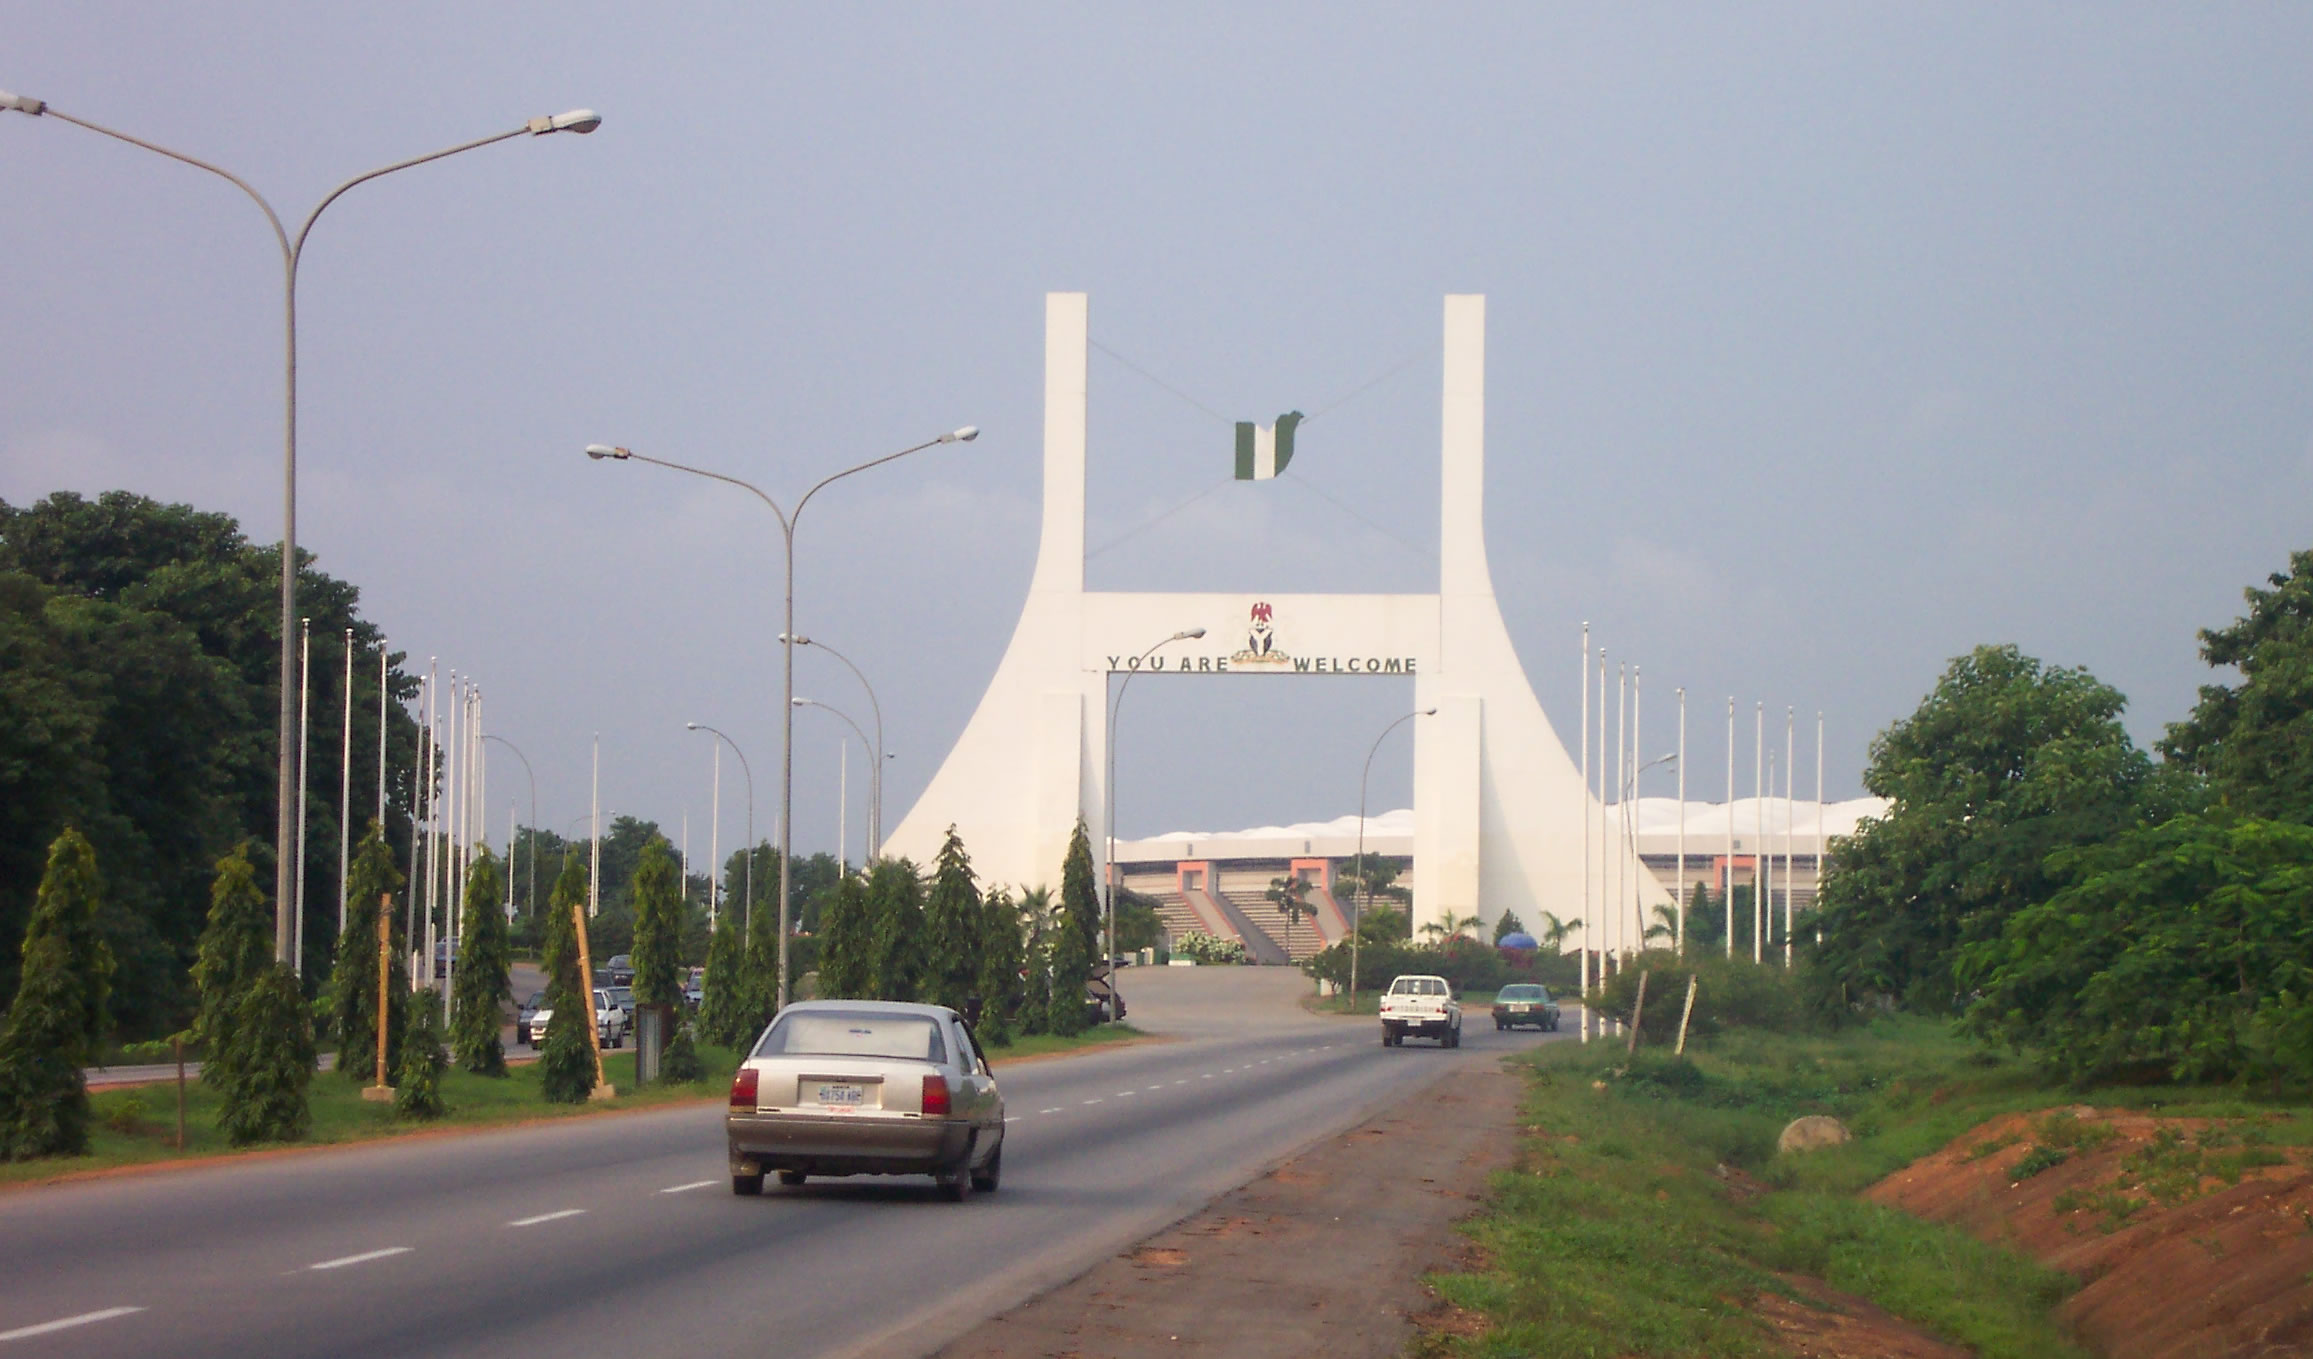 Terrorists Plotting To Bomb Abuja, US, UK Warn